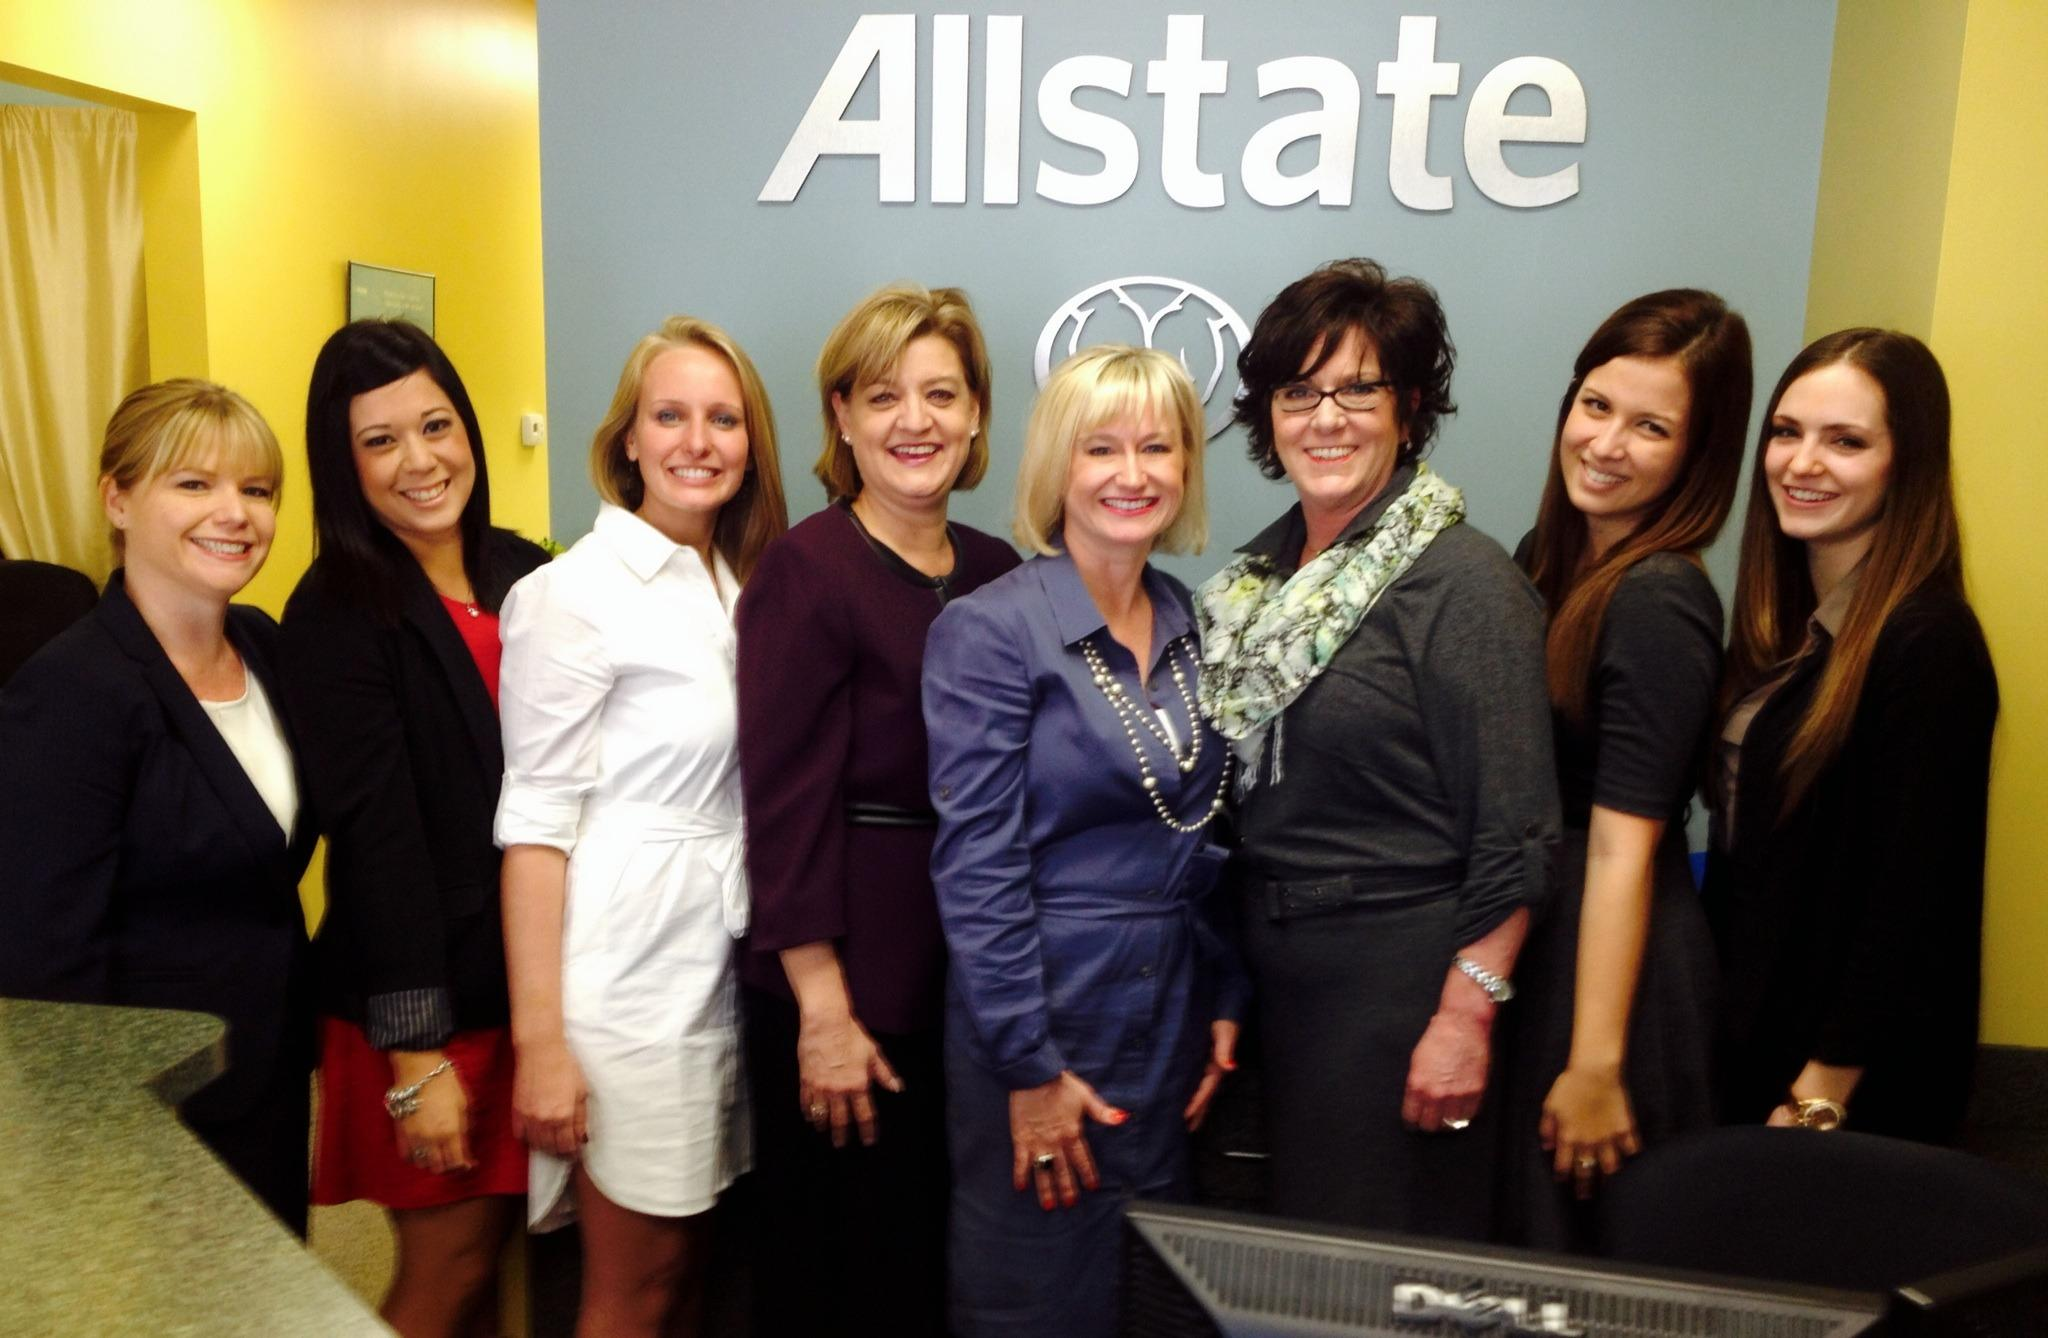 Amy Rossi: Allstate Insurance image 7